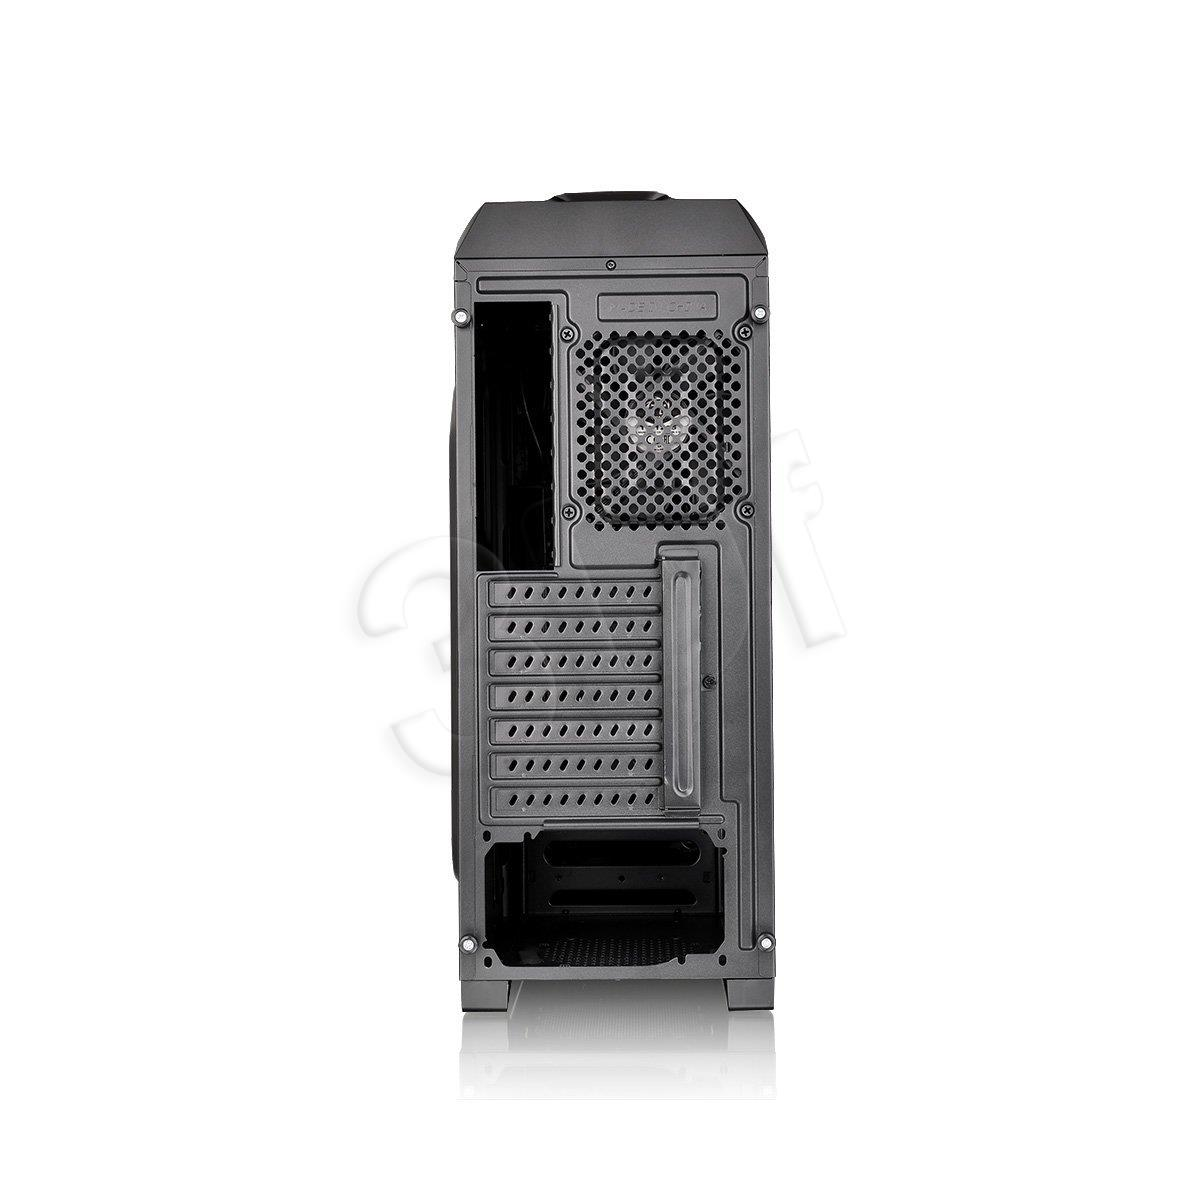 Thermaltake Versa N25 - Midi - ATX - without PSU (PS/2) - black - USB/Audio (CA- 1G2- 00M1WN- 00) Datora korpuss